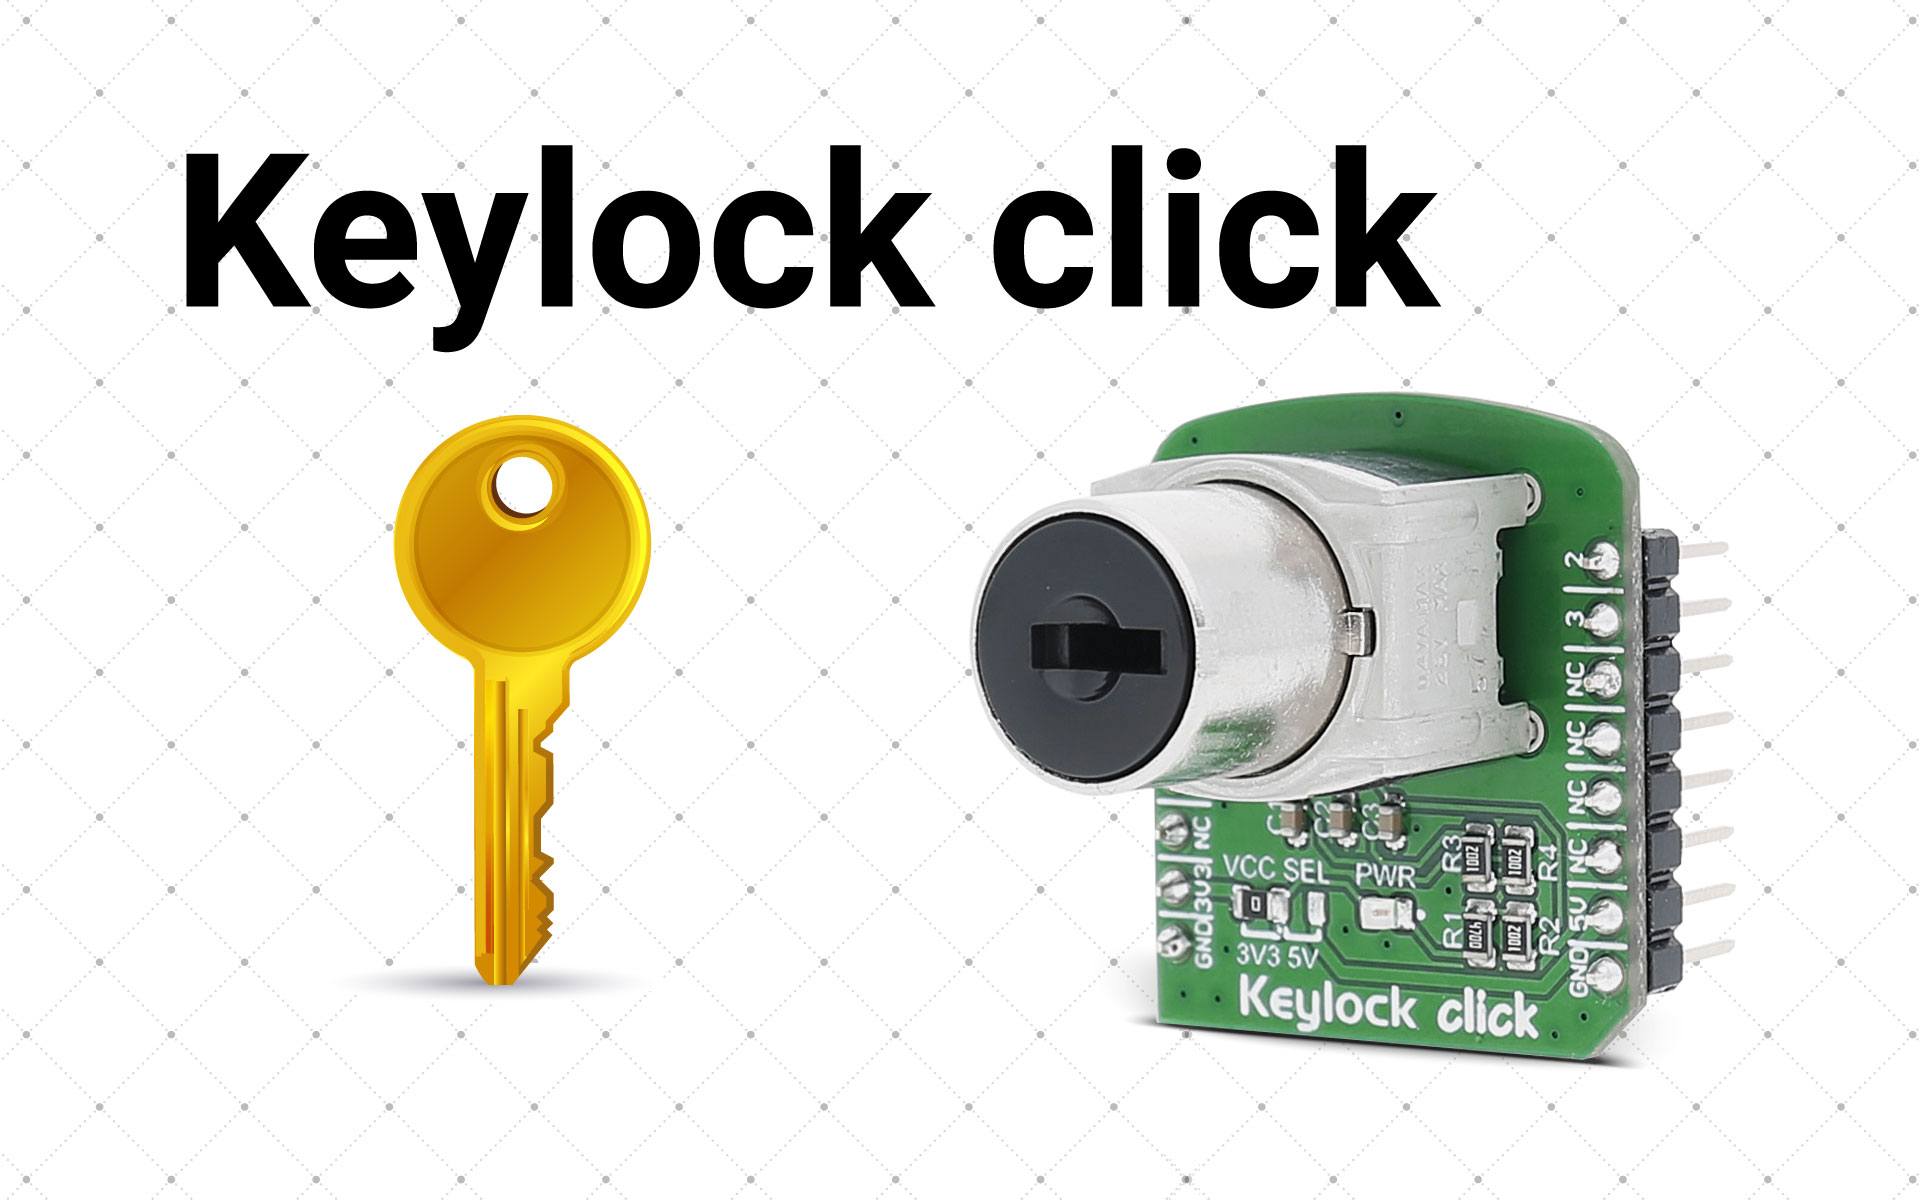 Keylock click - old fashioned security on a click board™